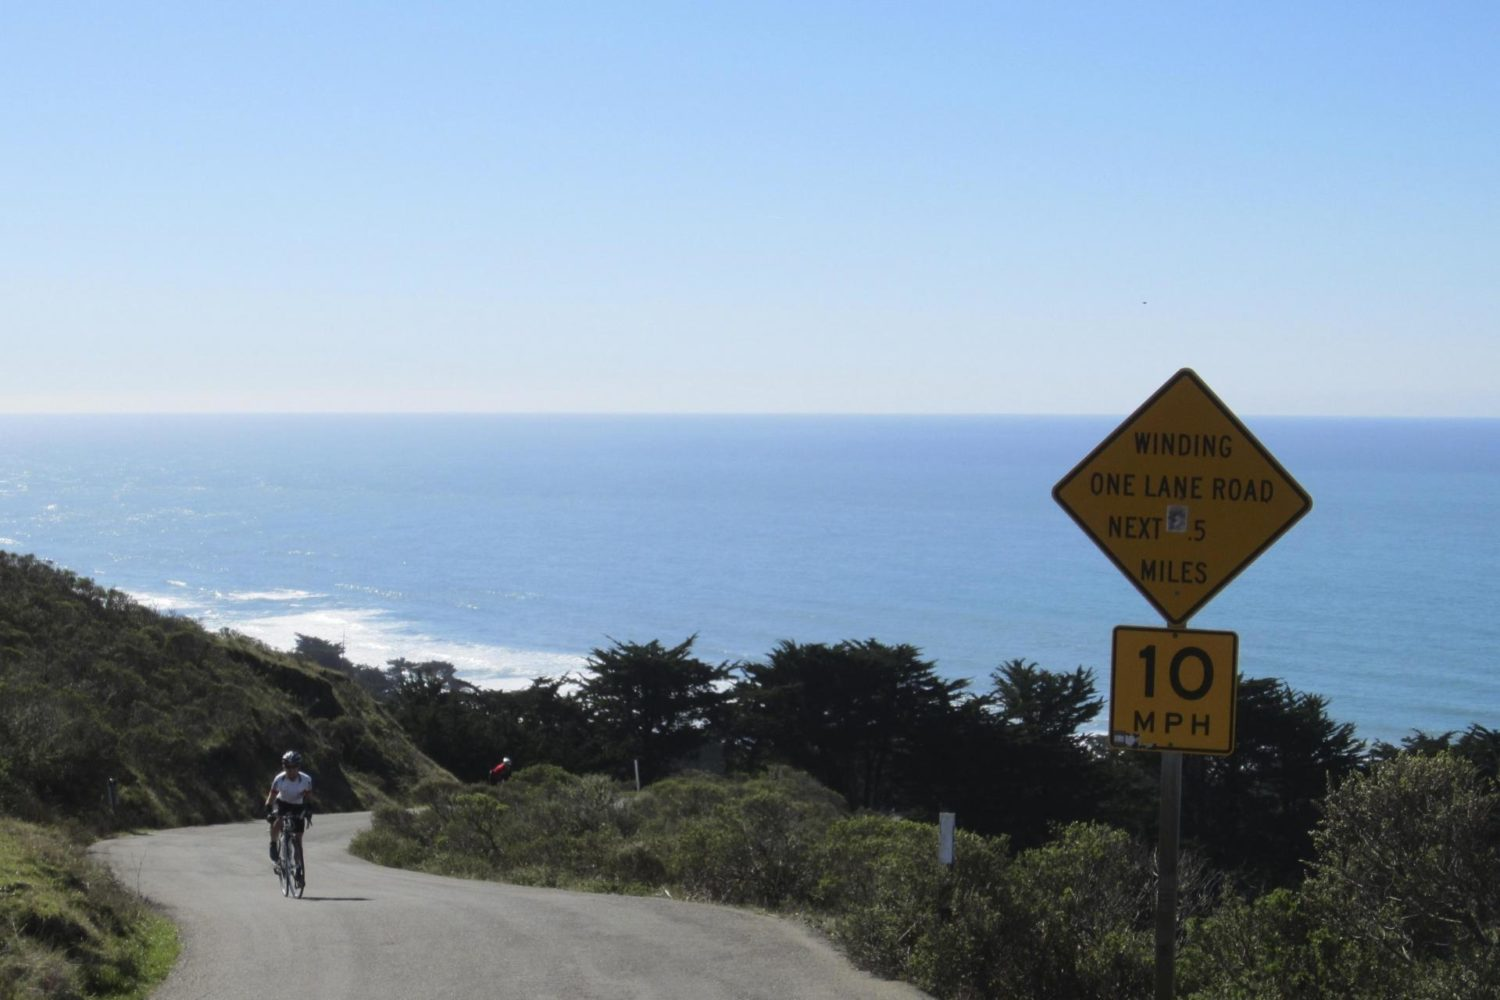 Self guided California bike tour - Sonoma County Wine Country Road Cycling